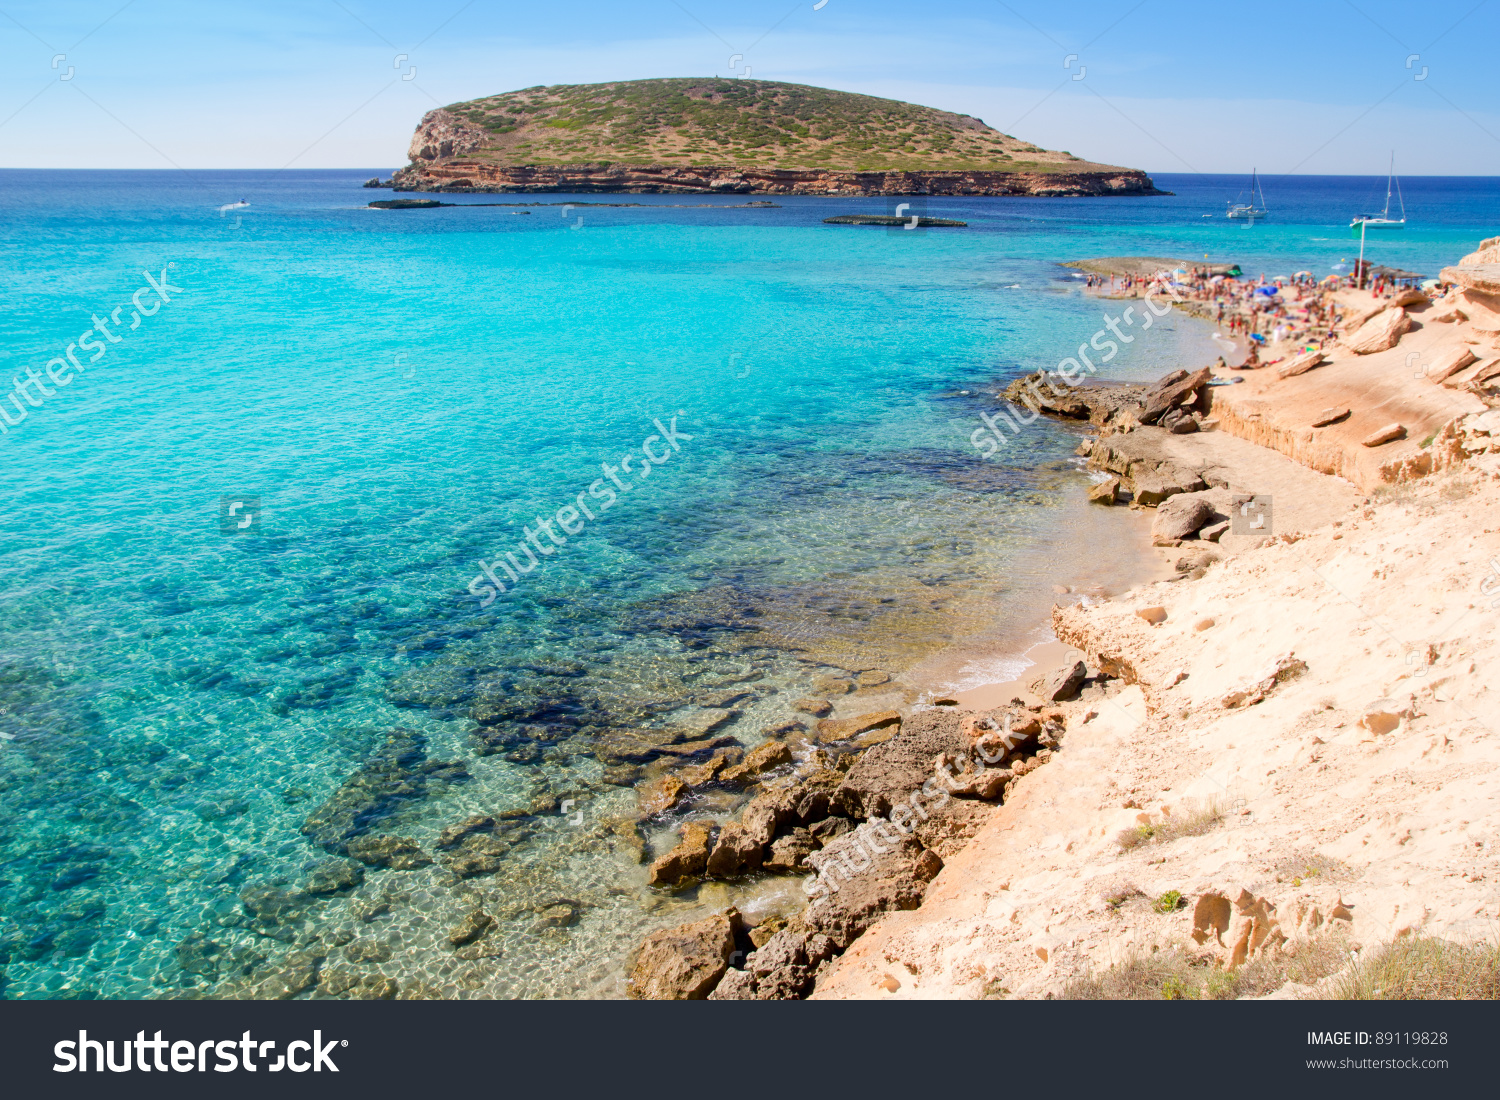 Ibiza Cala Conta Conmte In San Antonio With Isla Del Bosque Stock.